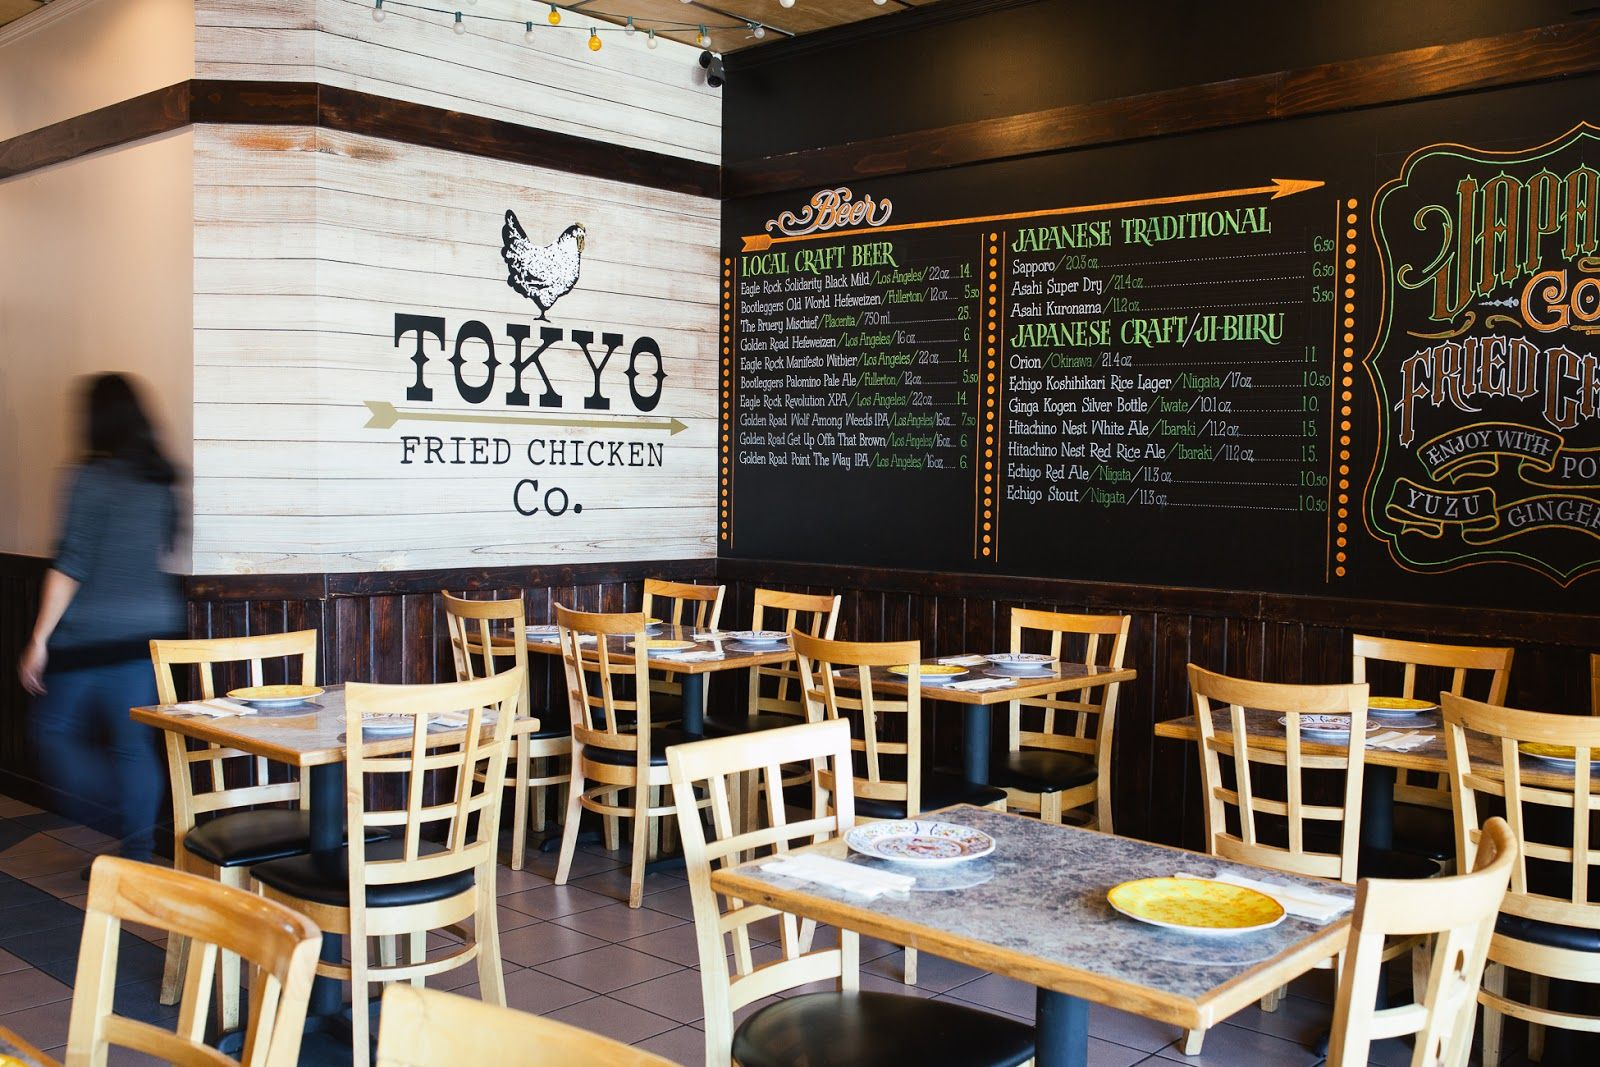 Tokyo Fried Chicken Co Los Angeles California Soy Glazed Carrots With Bacon Fried Chicken Restaurant Fried Chicken Chicken Shop